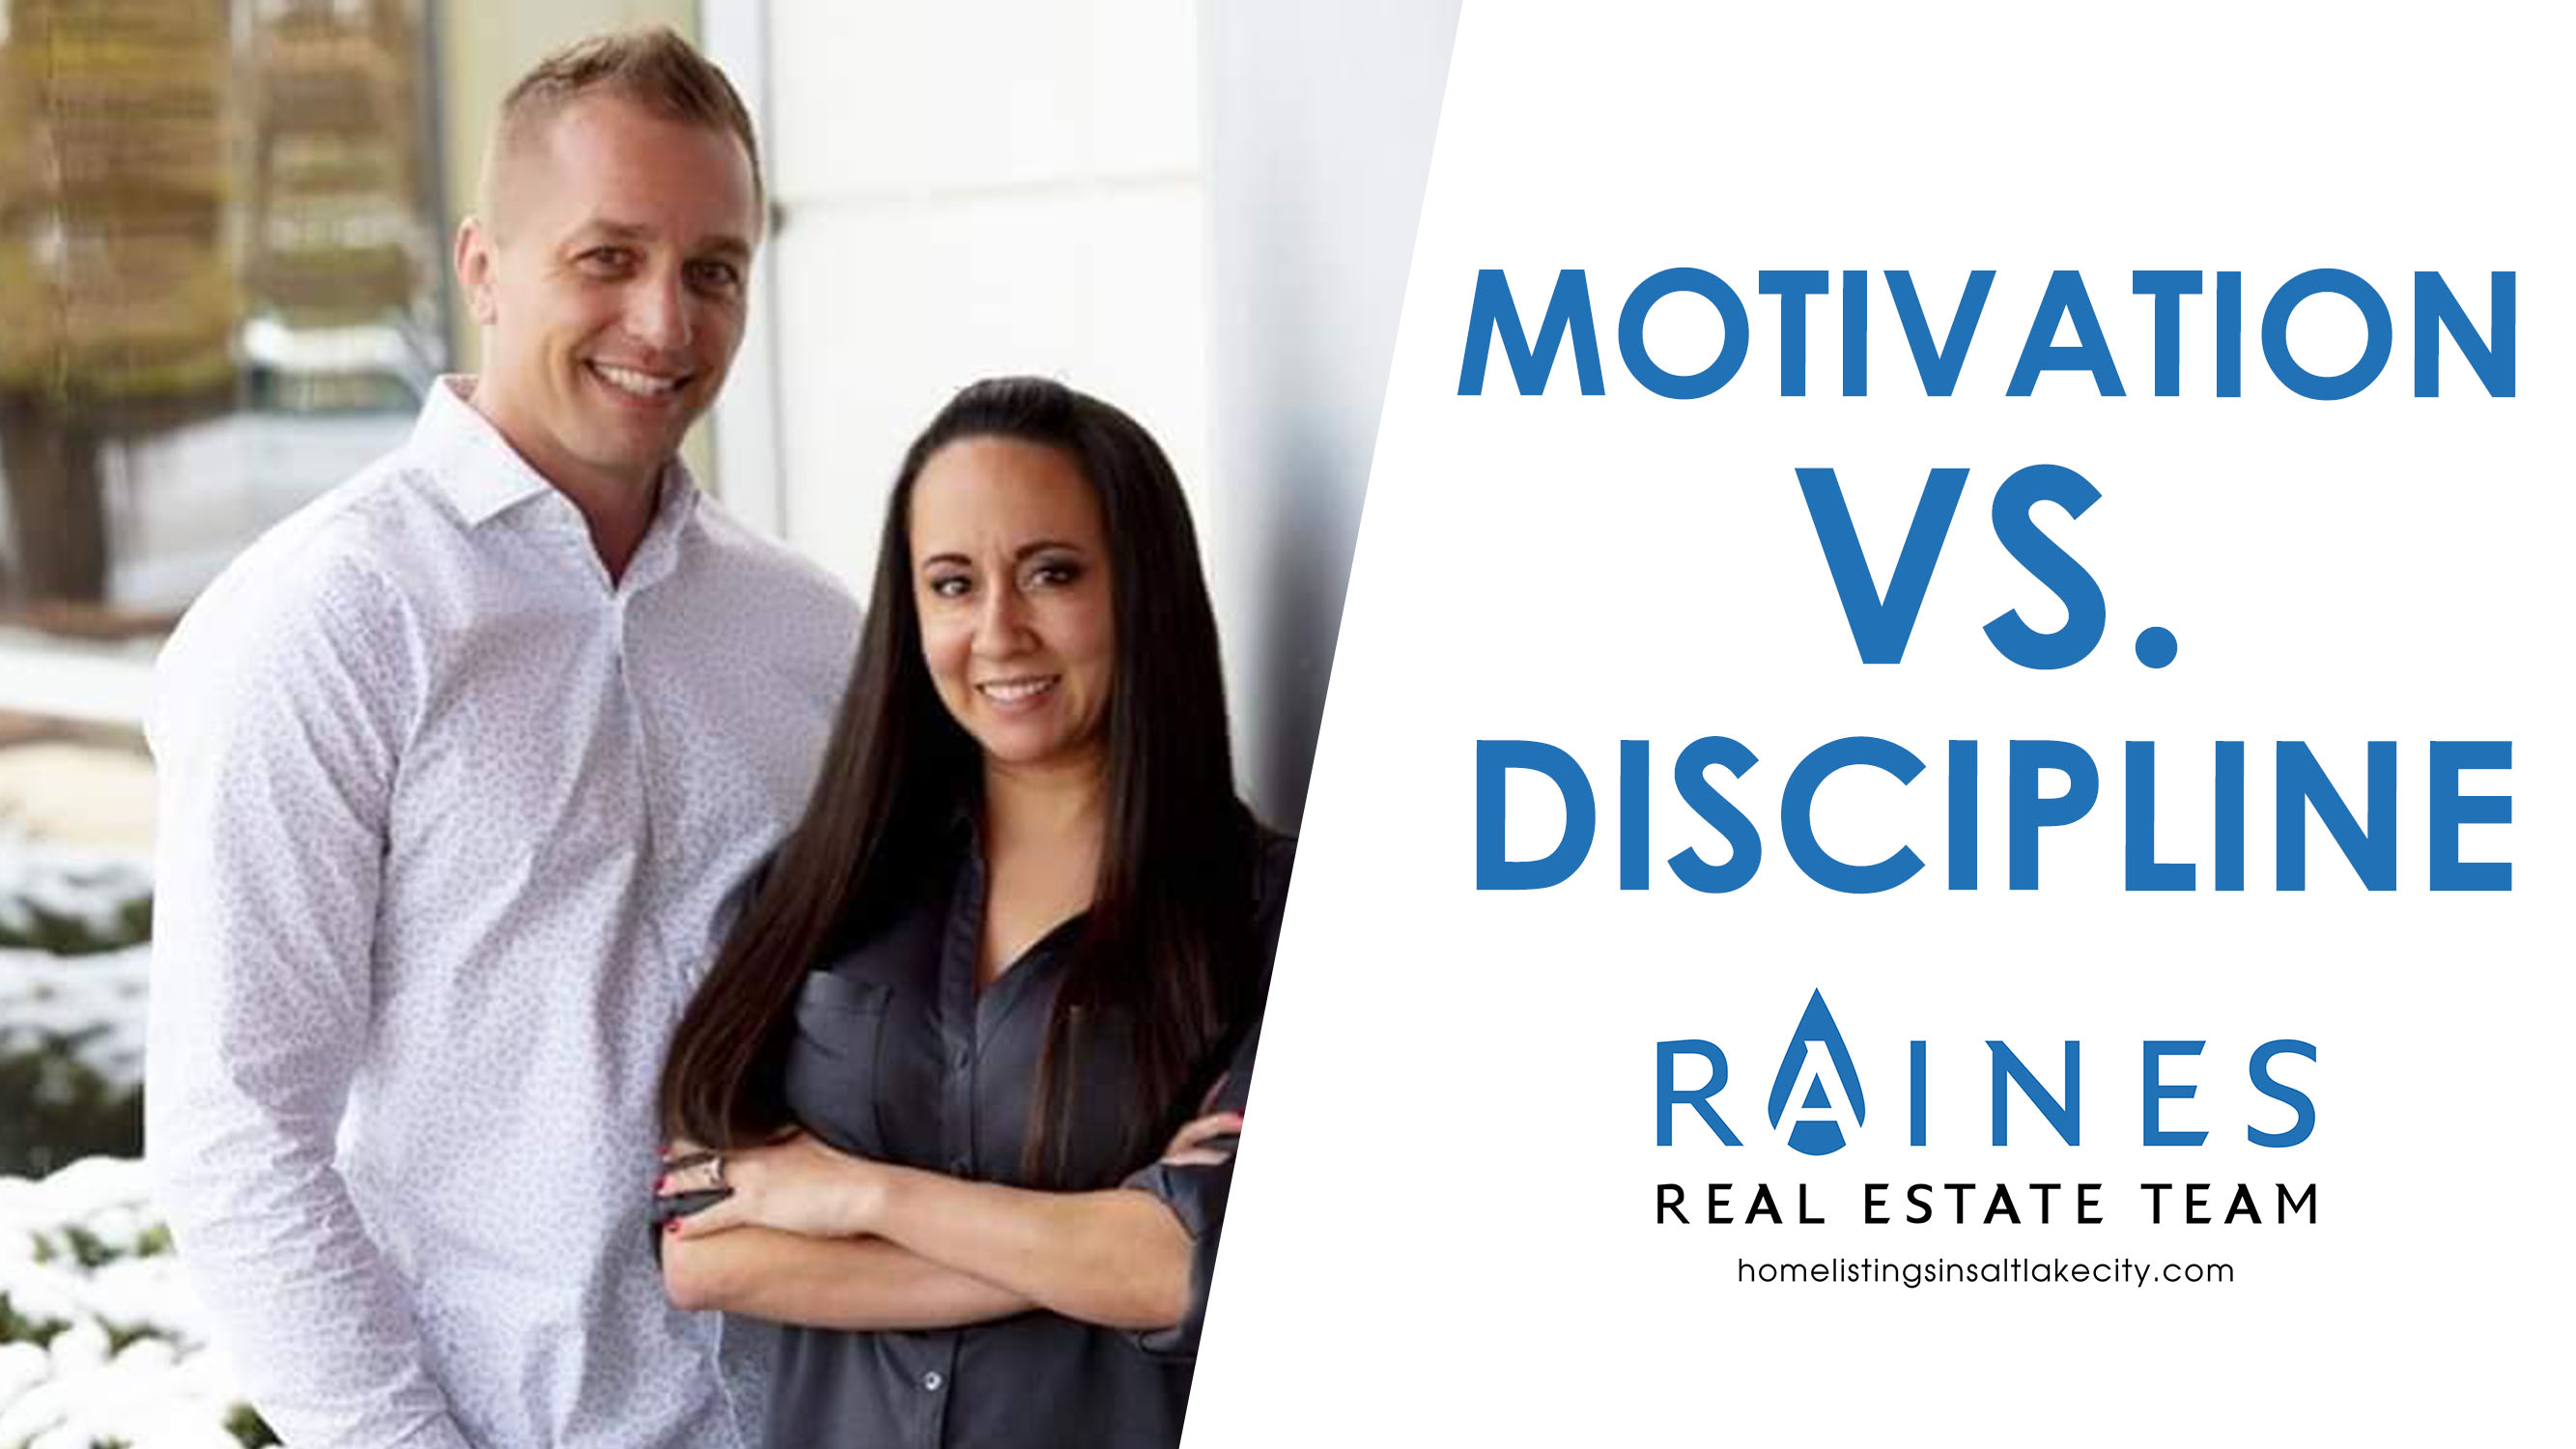 Q: What's the Difference Between Motivation & Discipline?